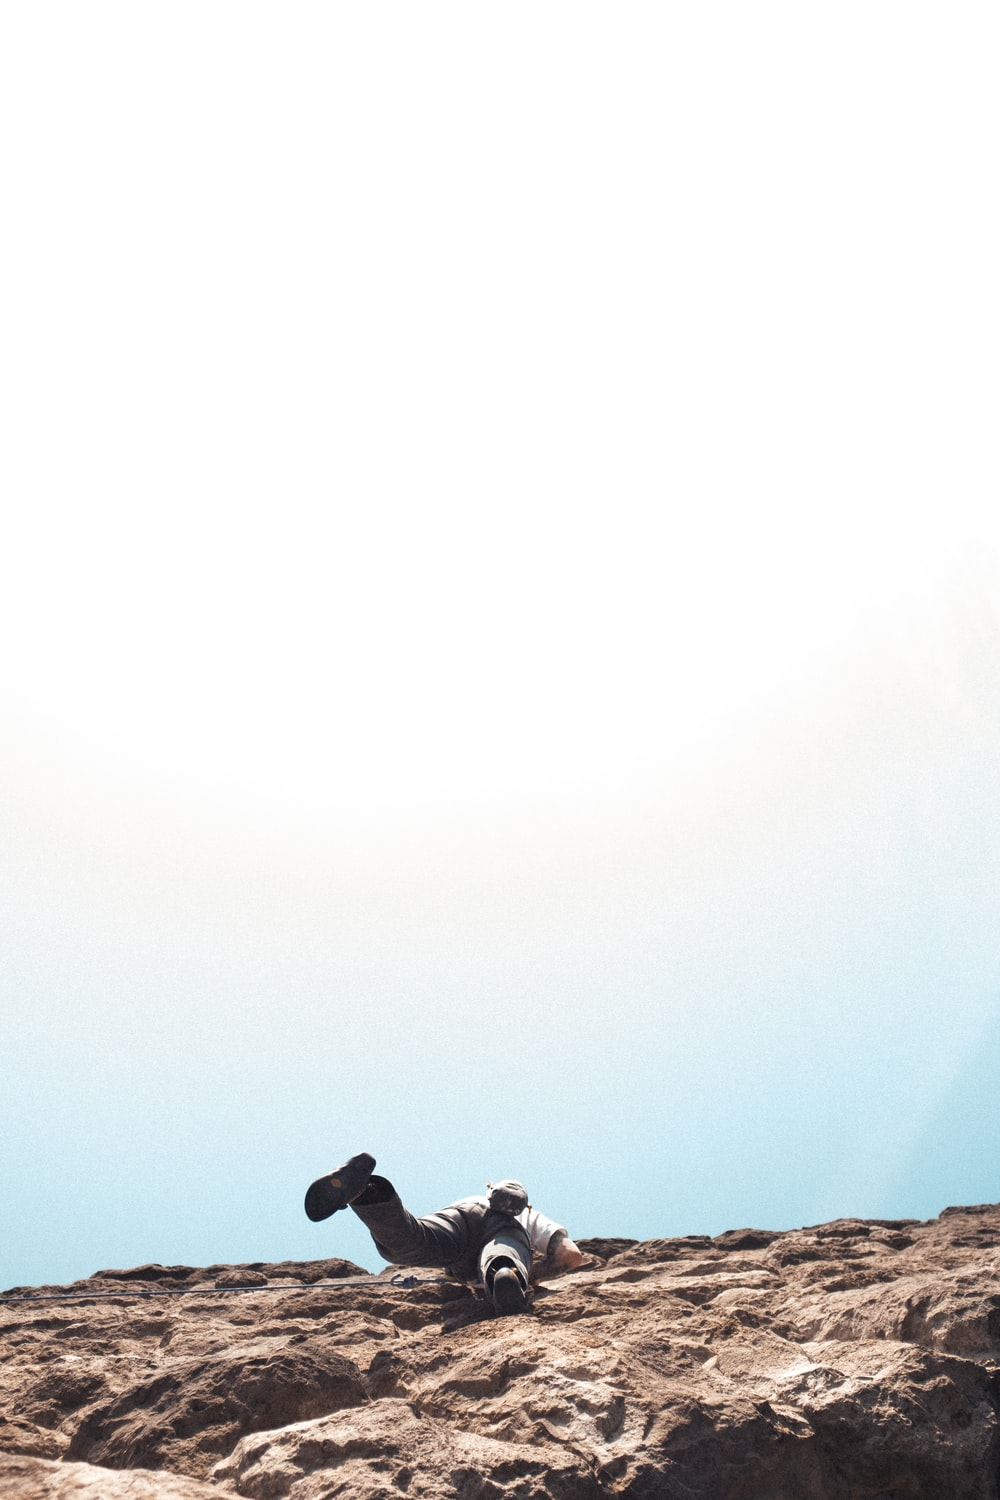 silhouette of man sitting on rock formation during daytime